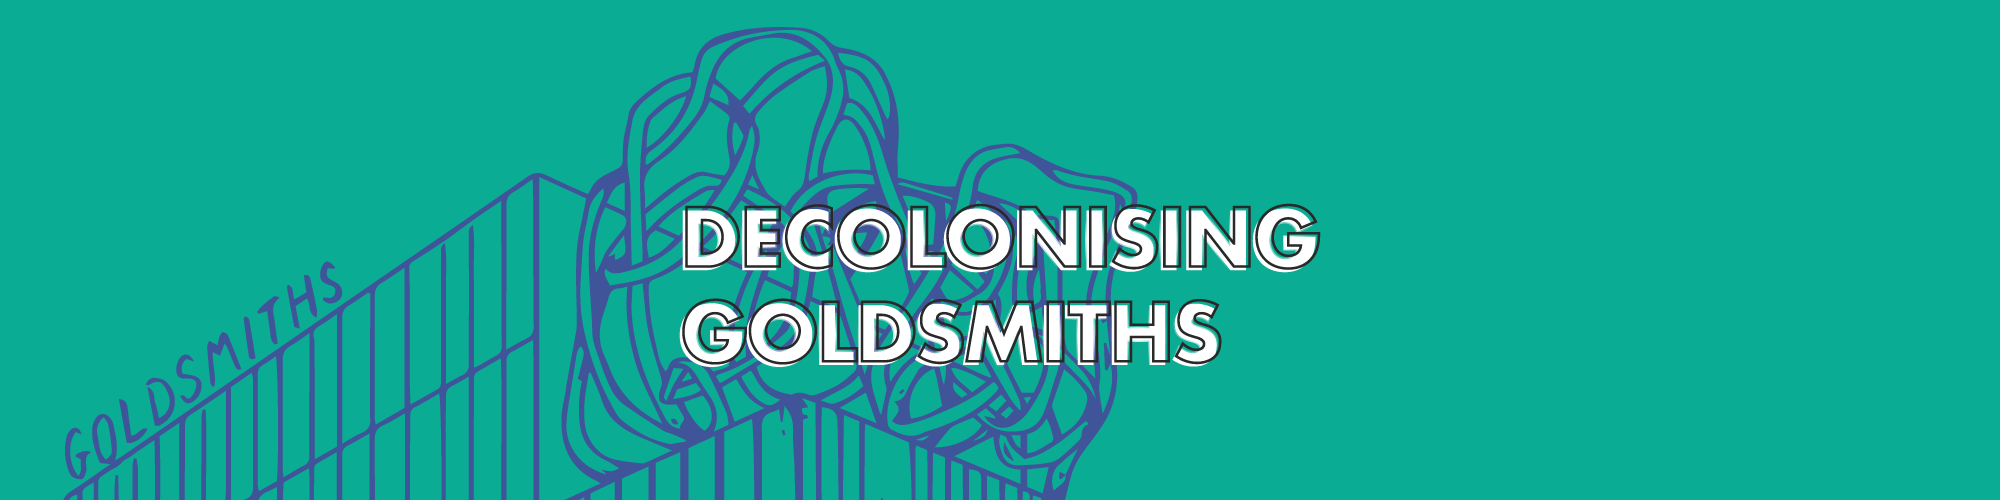 We have launched a campaign to challenge racial inequality at Goldsmiths, this includes tackling the attainment gap, microaggressions and decolonising the college.